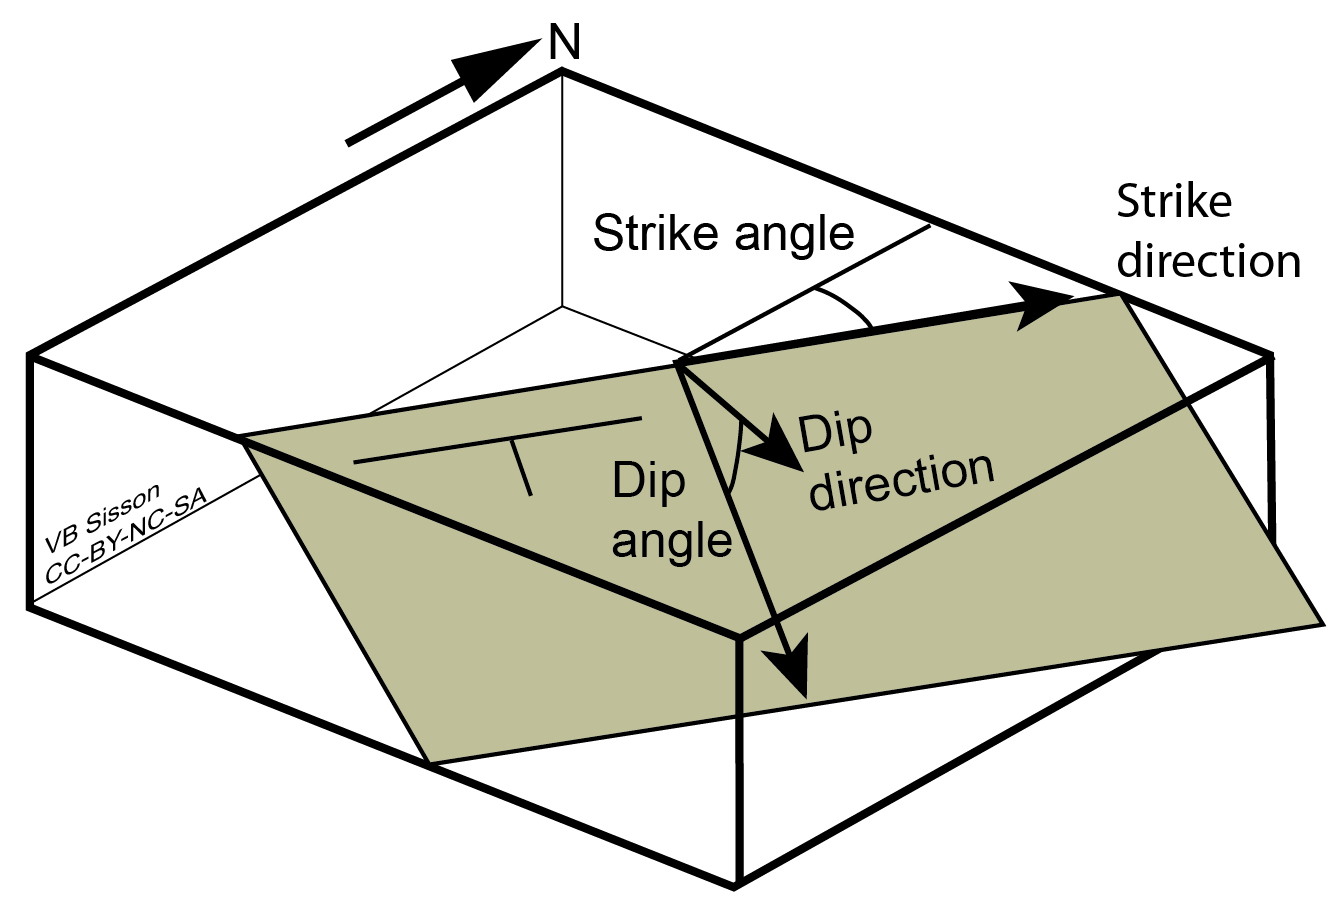 Block Diagram showing strike and dip of an inclined plane